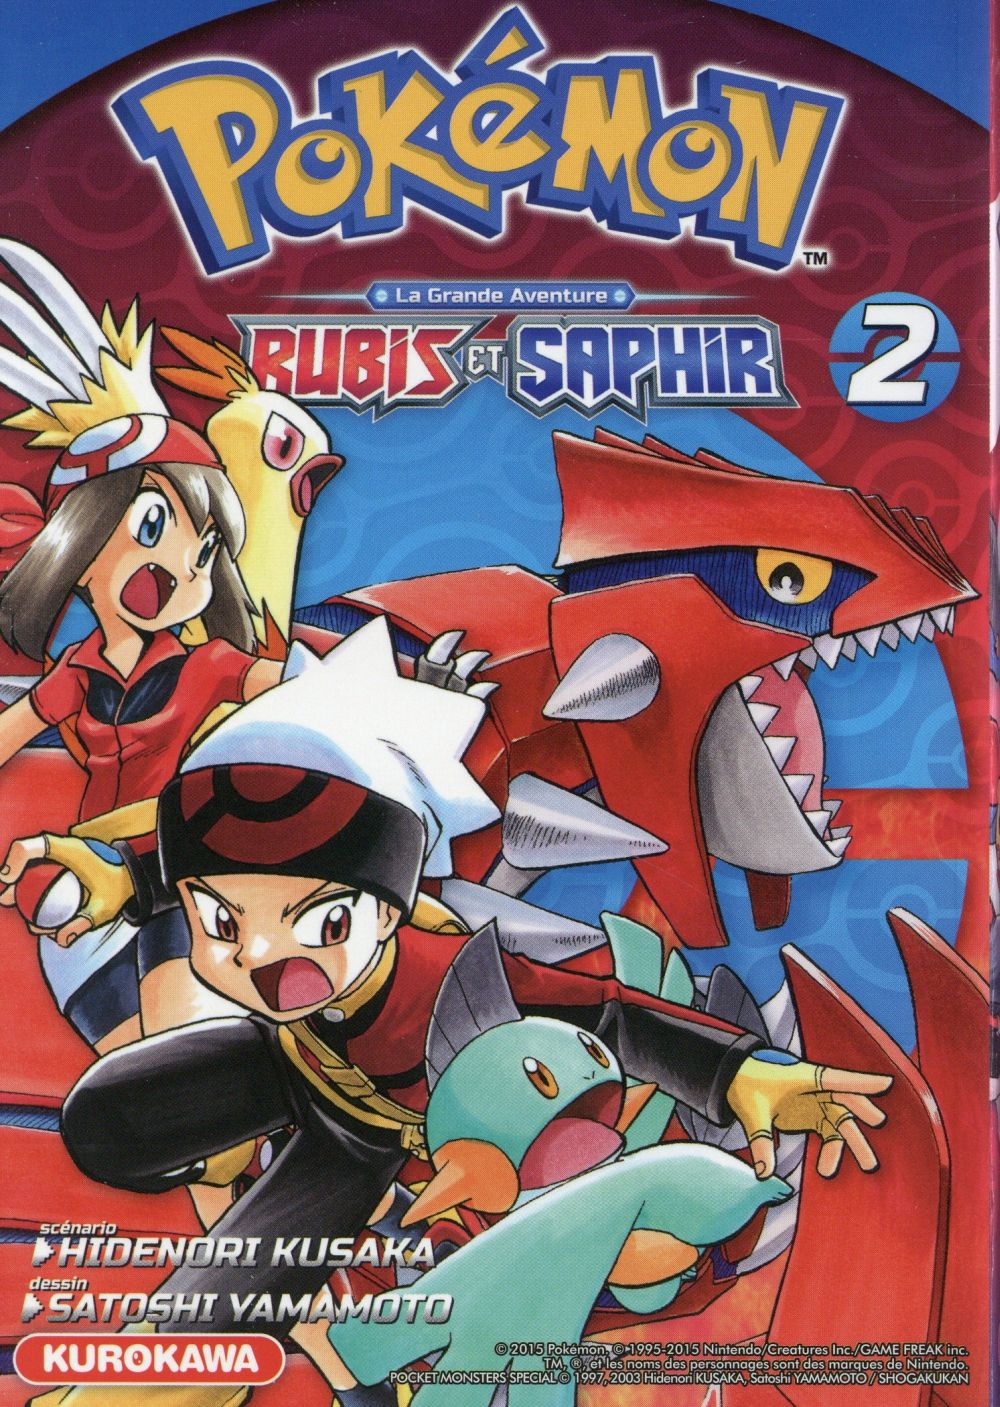 Pokemon rubis et saphir - tome 2 - vol02